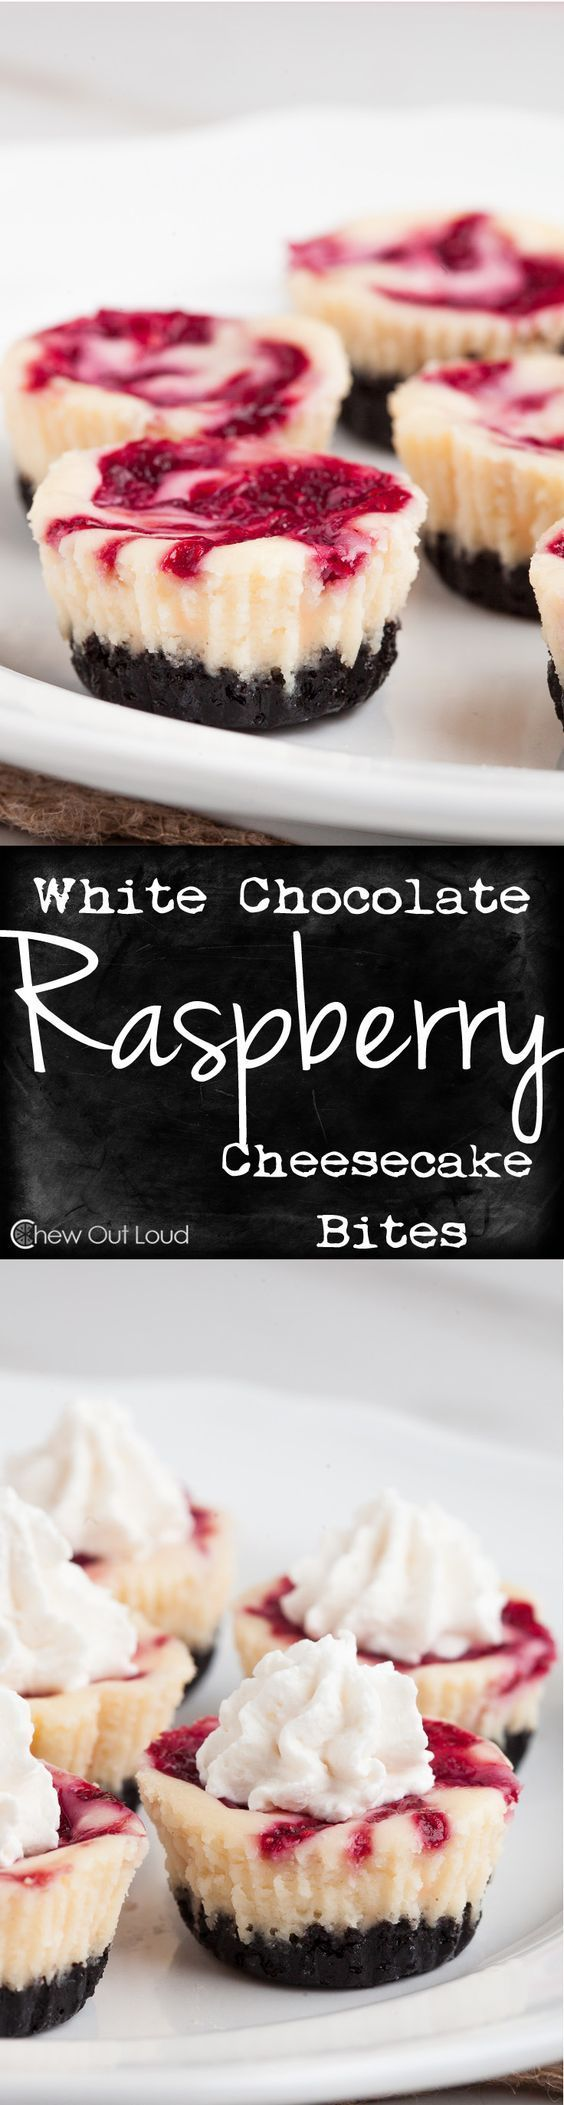 White Chocolate Raspberry Cheesecake Bites Individual Servings Dessert Recipe via Chew Out Loud - New York Style dense, rich, luscious cheesecakes that you can pop into your mouth. A dessert idea perfect for any occasion.